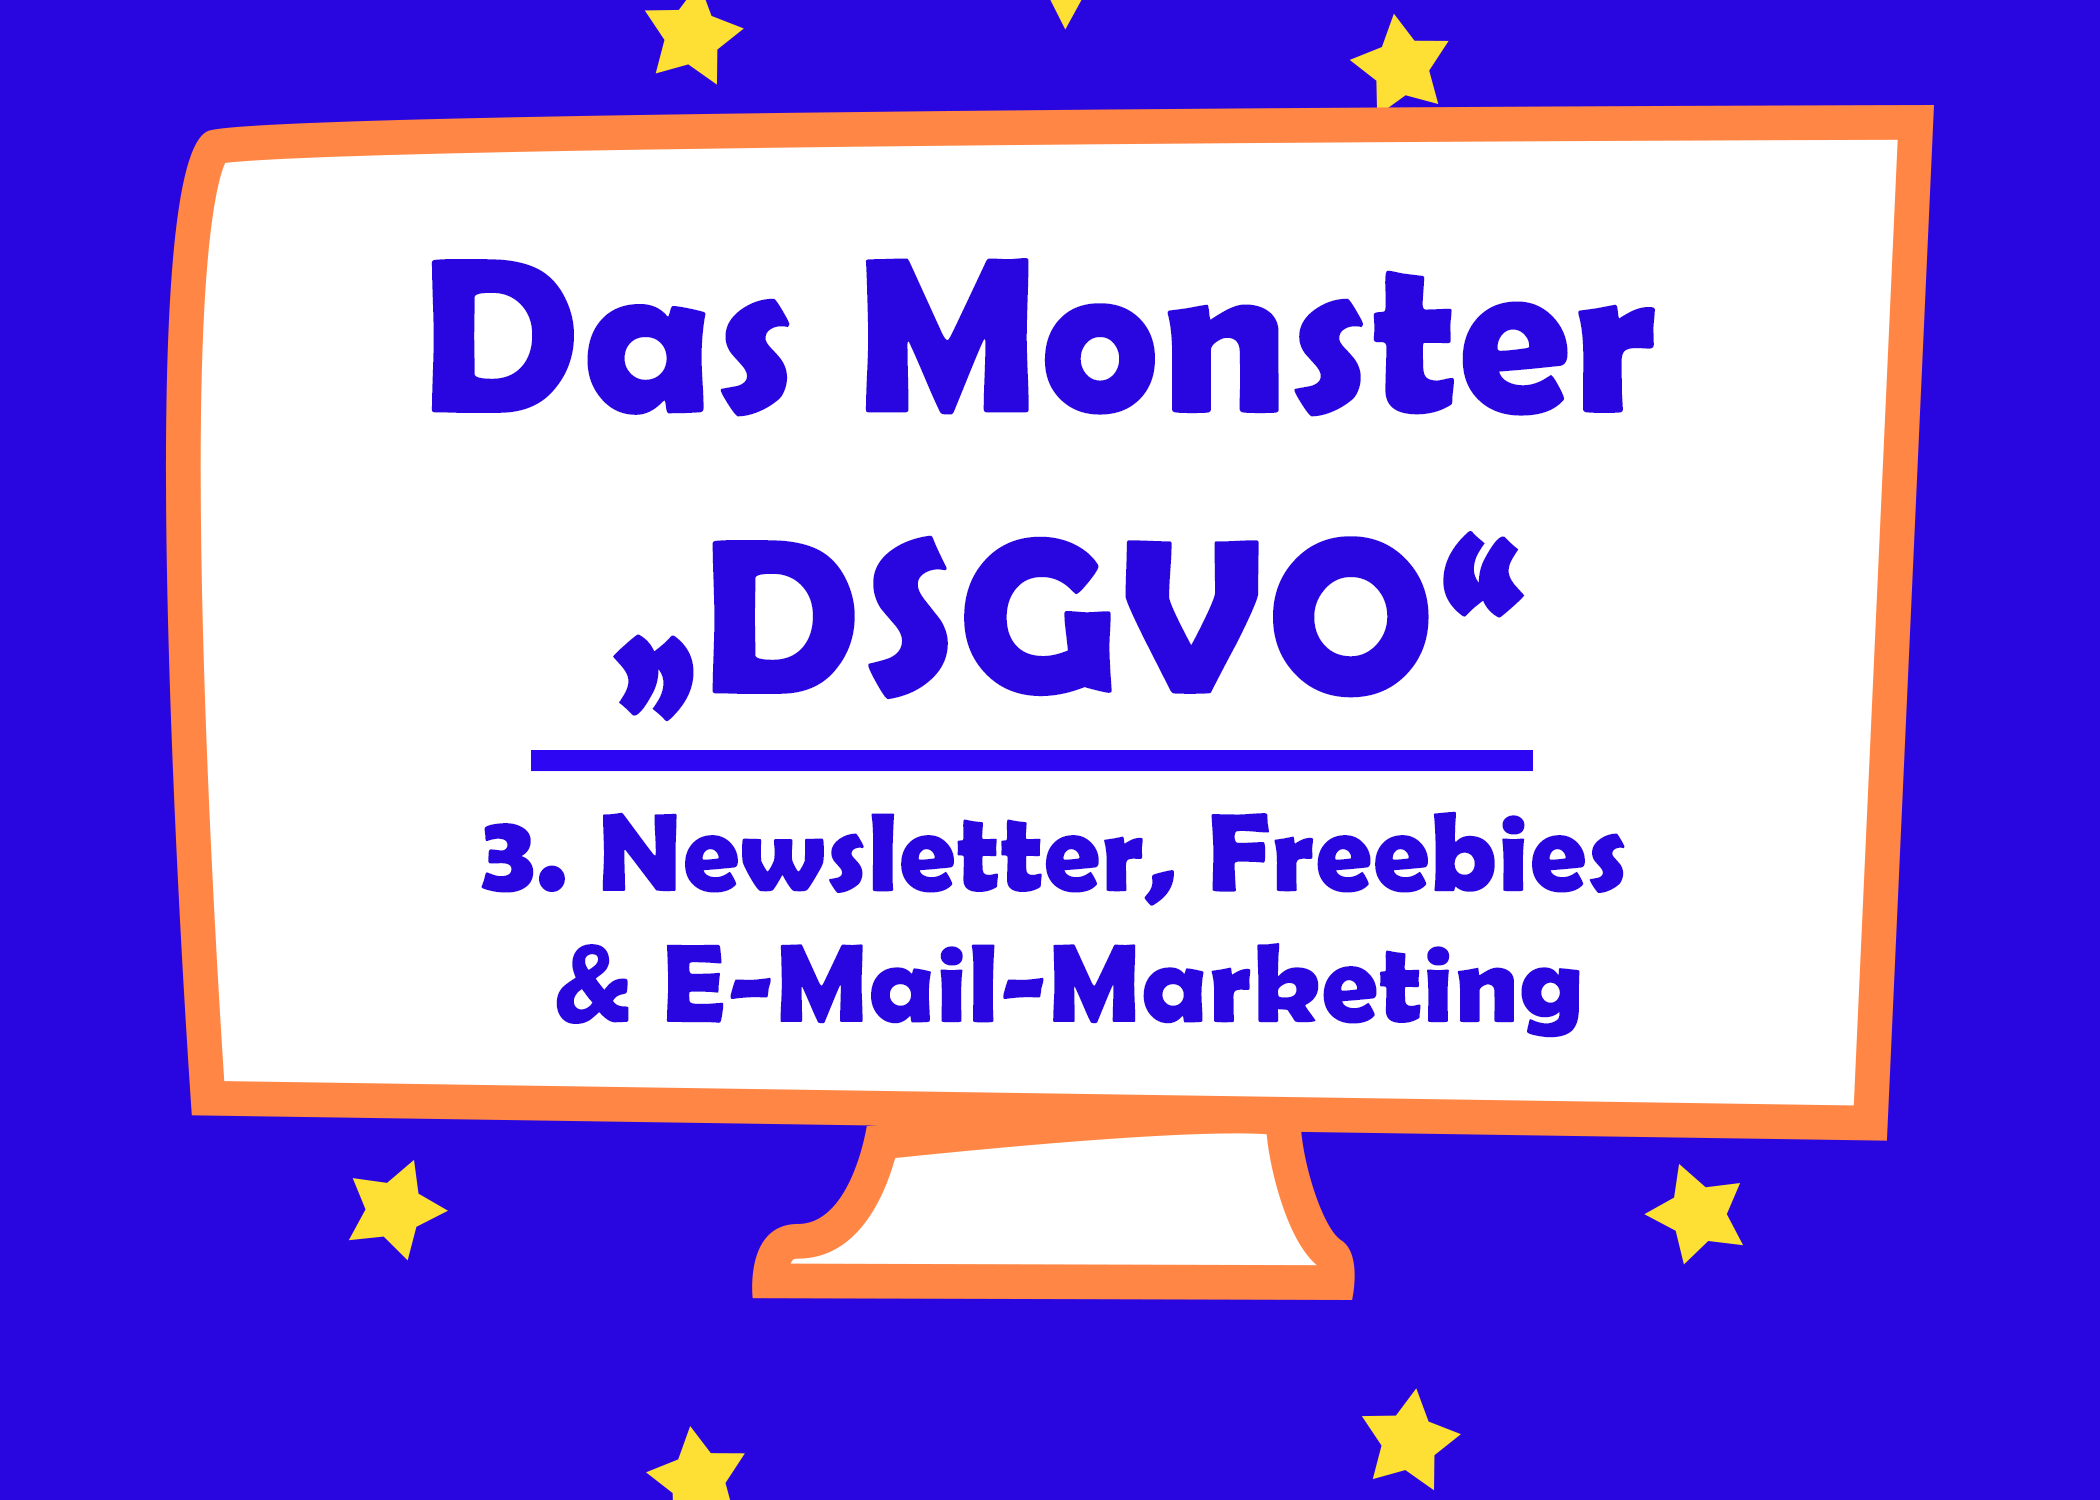 dsgvo newsletter freebies und e-mail-marketing